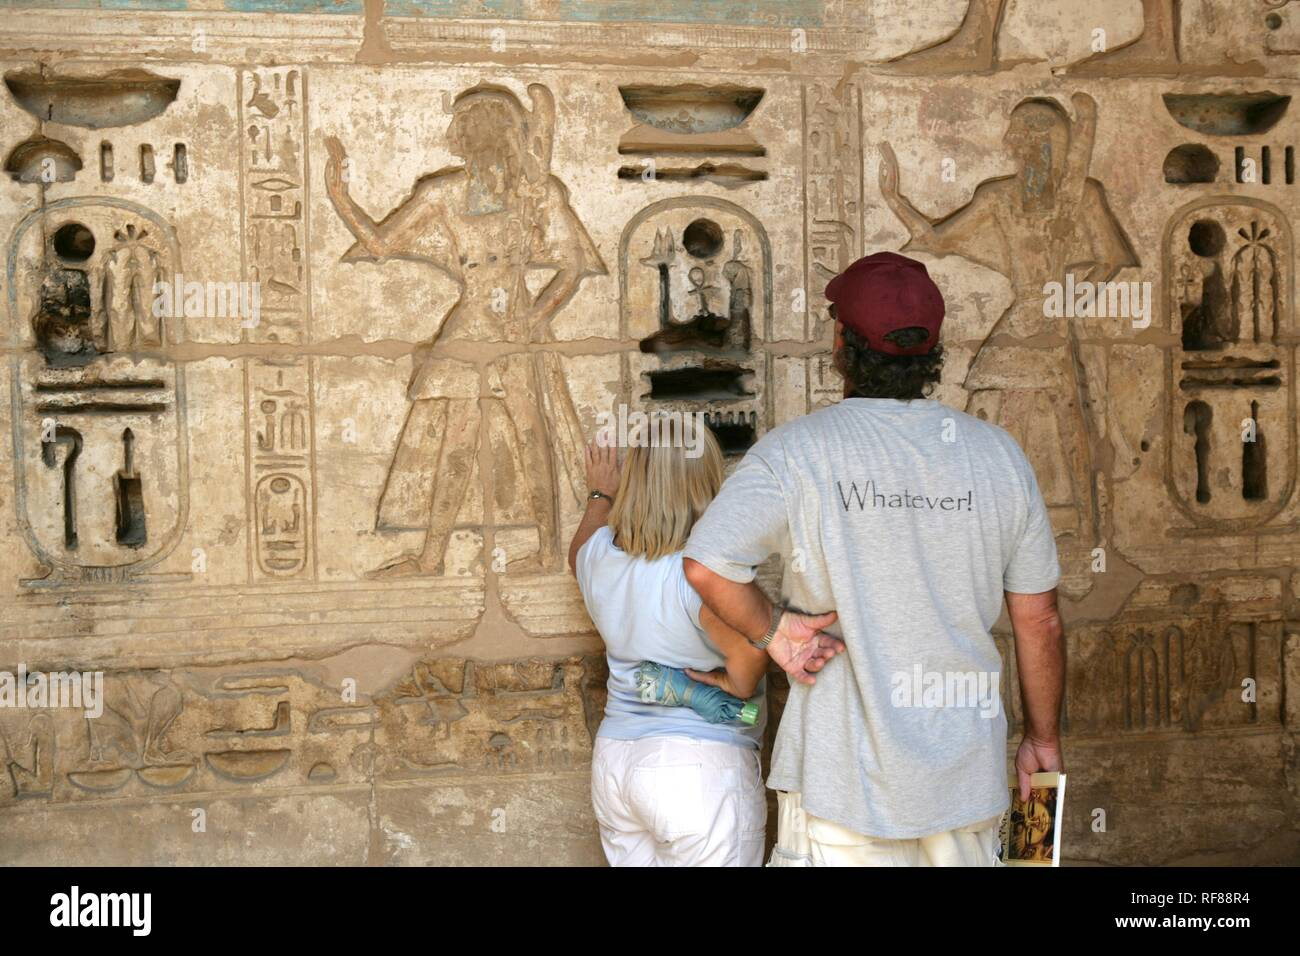 Tourists looking at hieroglyphs, Medinet Habu, Mortuary Temple of Ramesses III, West Thebes, Luxor, Egypt, Africa Stock Photo